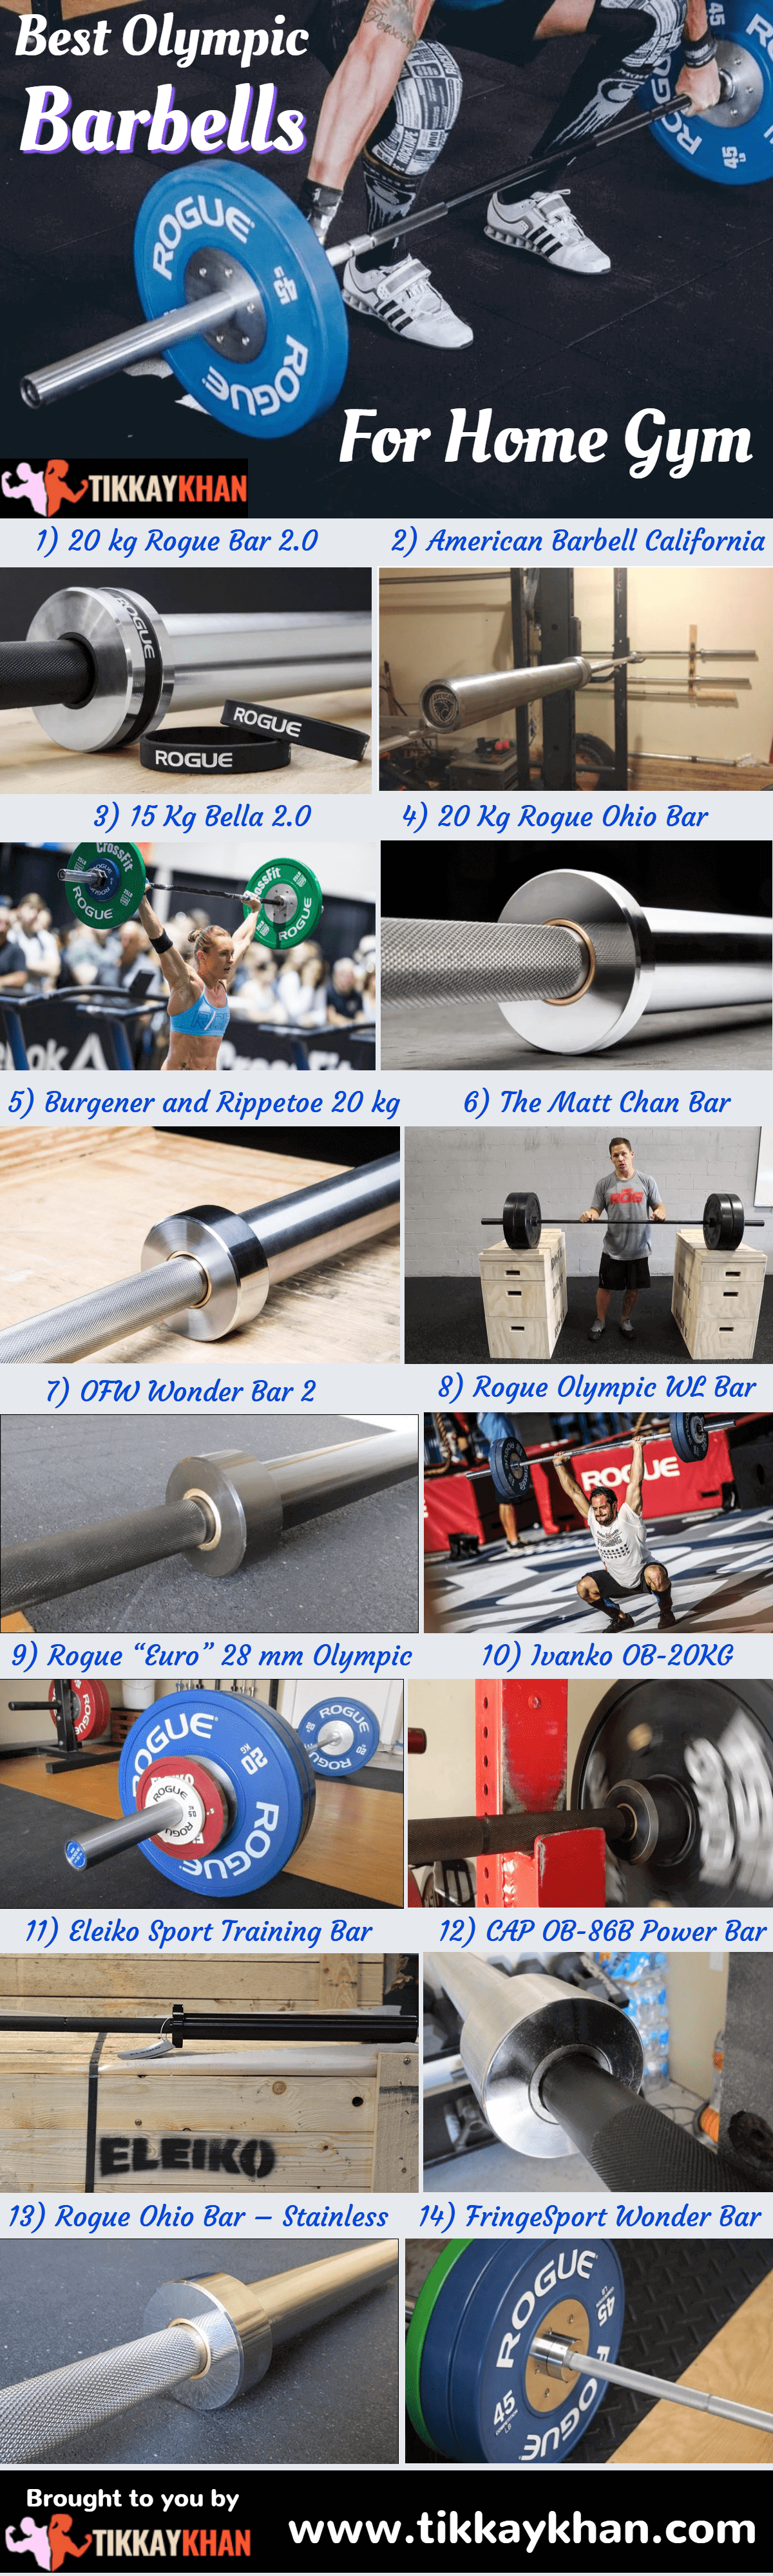 Best Olympic Barbells For Home Gym Infographic